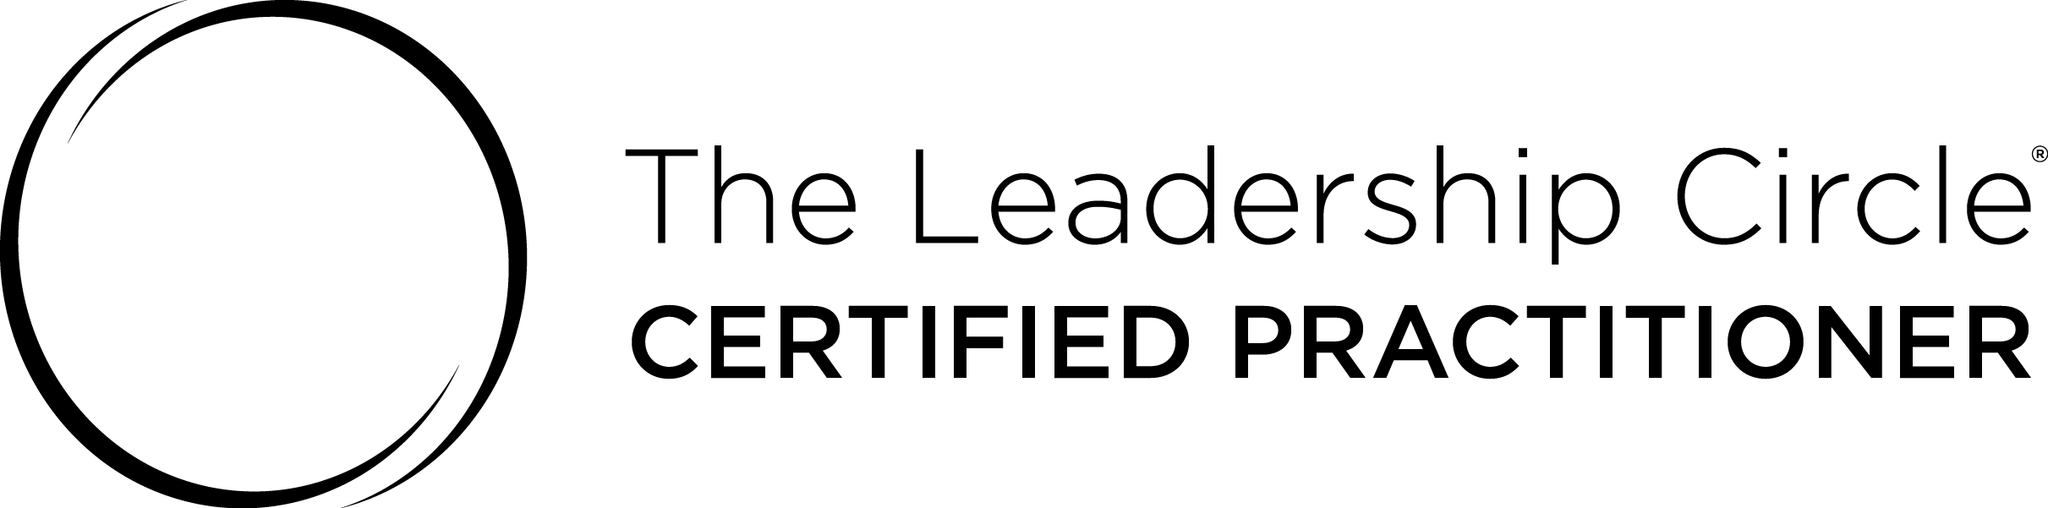 TLC Logo for Certified Practitioners+.png